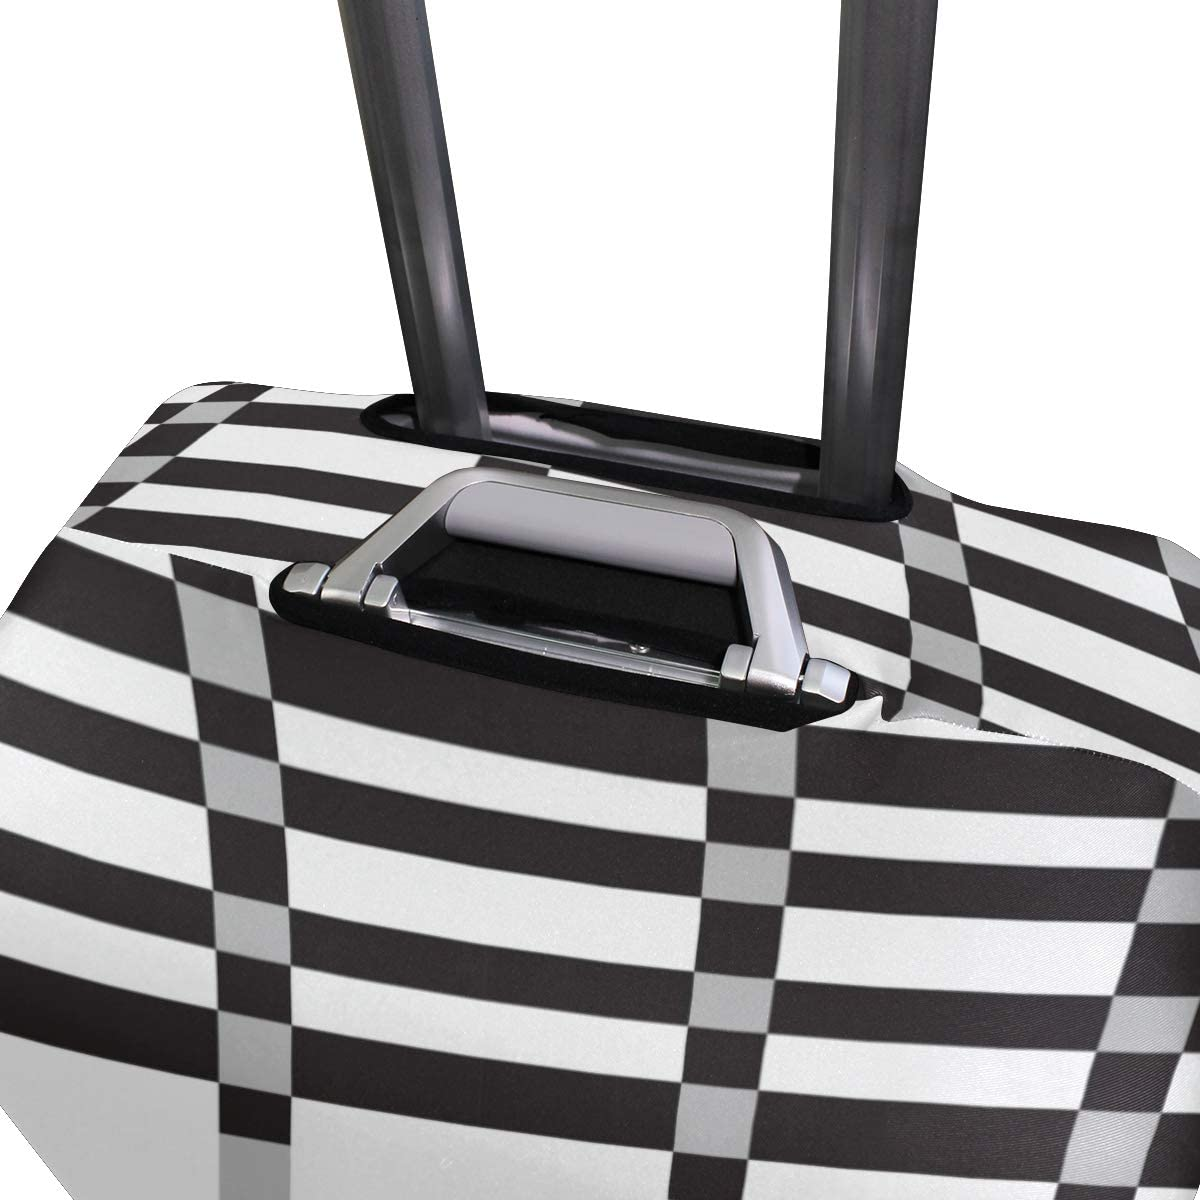 GIOVANIOR Black White Plaid Checked Luggage Cover Suitcase Protector Carry On Covers